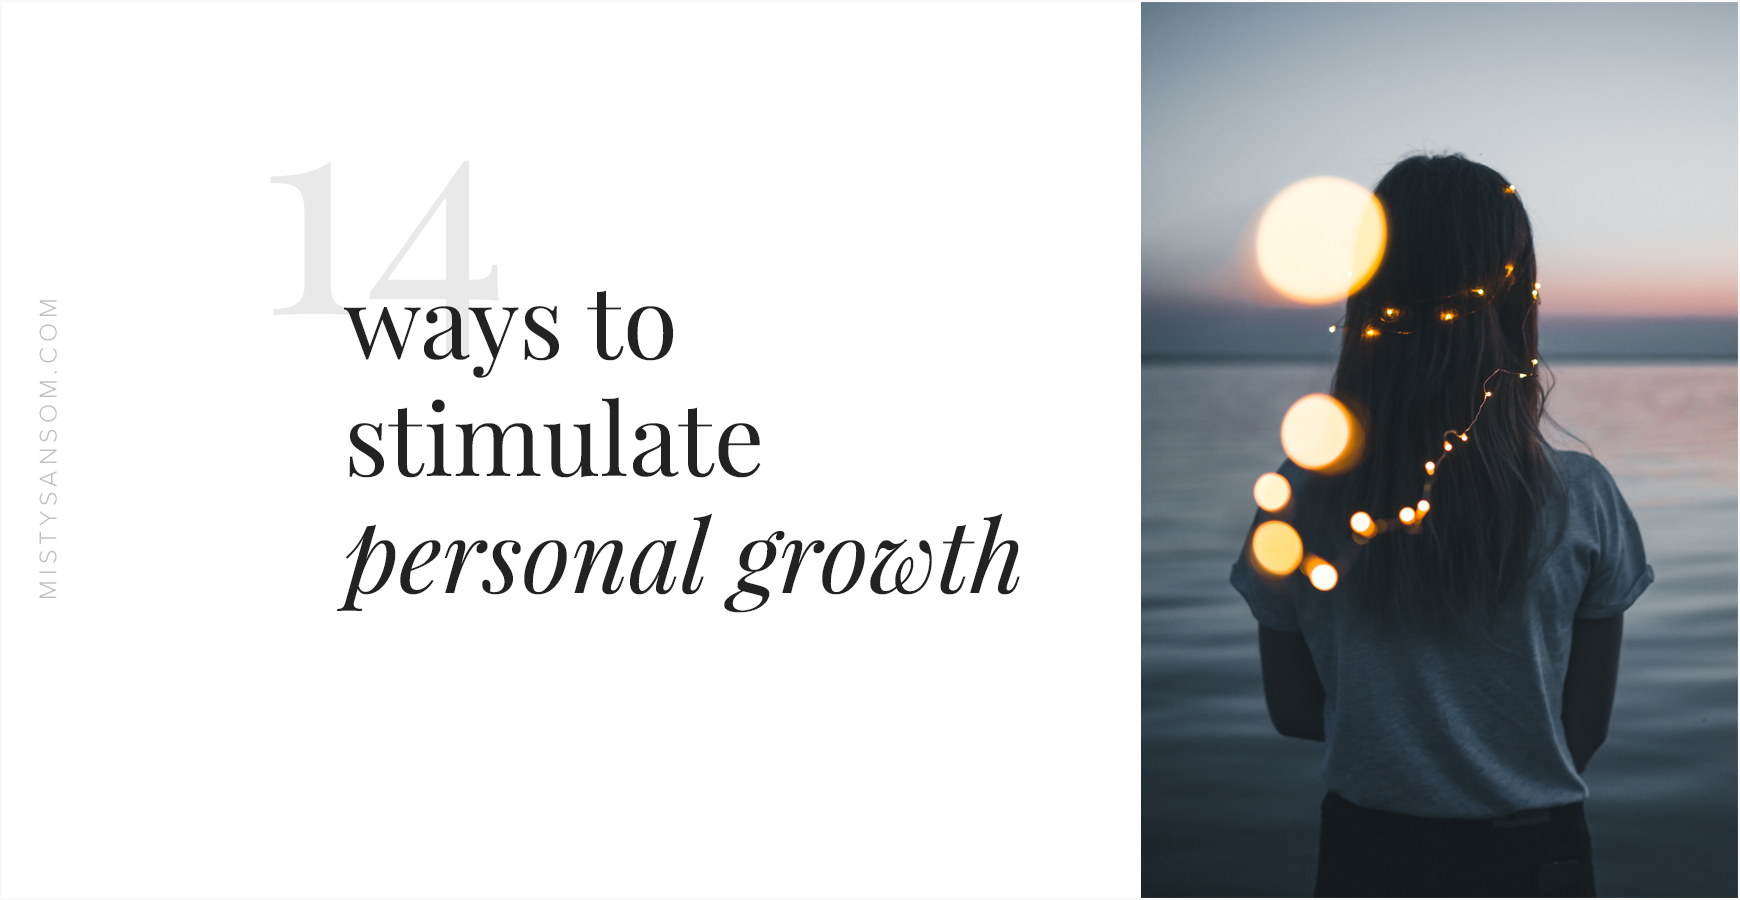 14-Ways-to-Stimulate-Personal-Growth.png